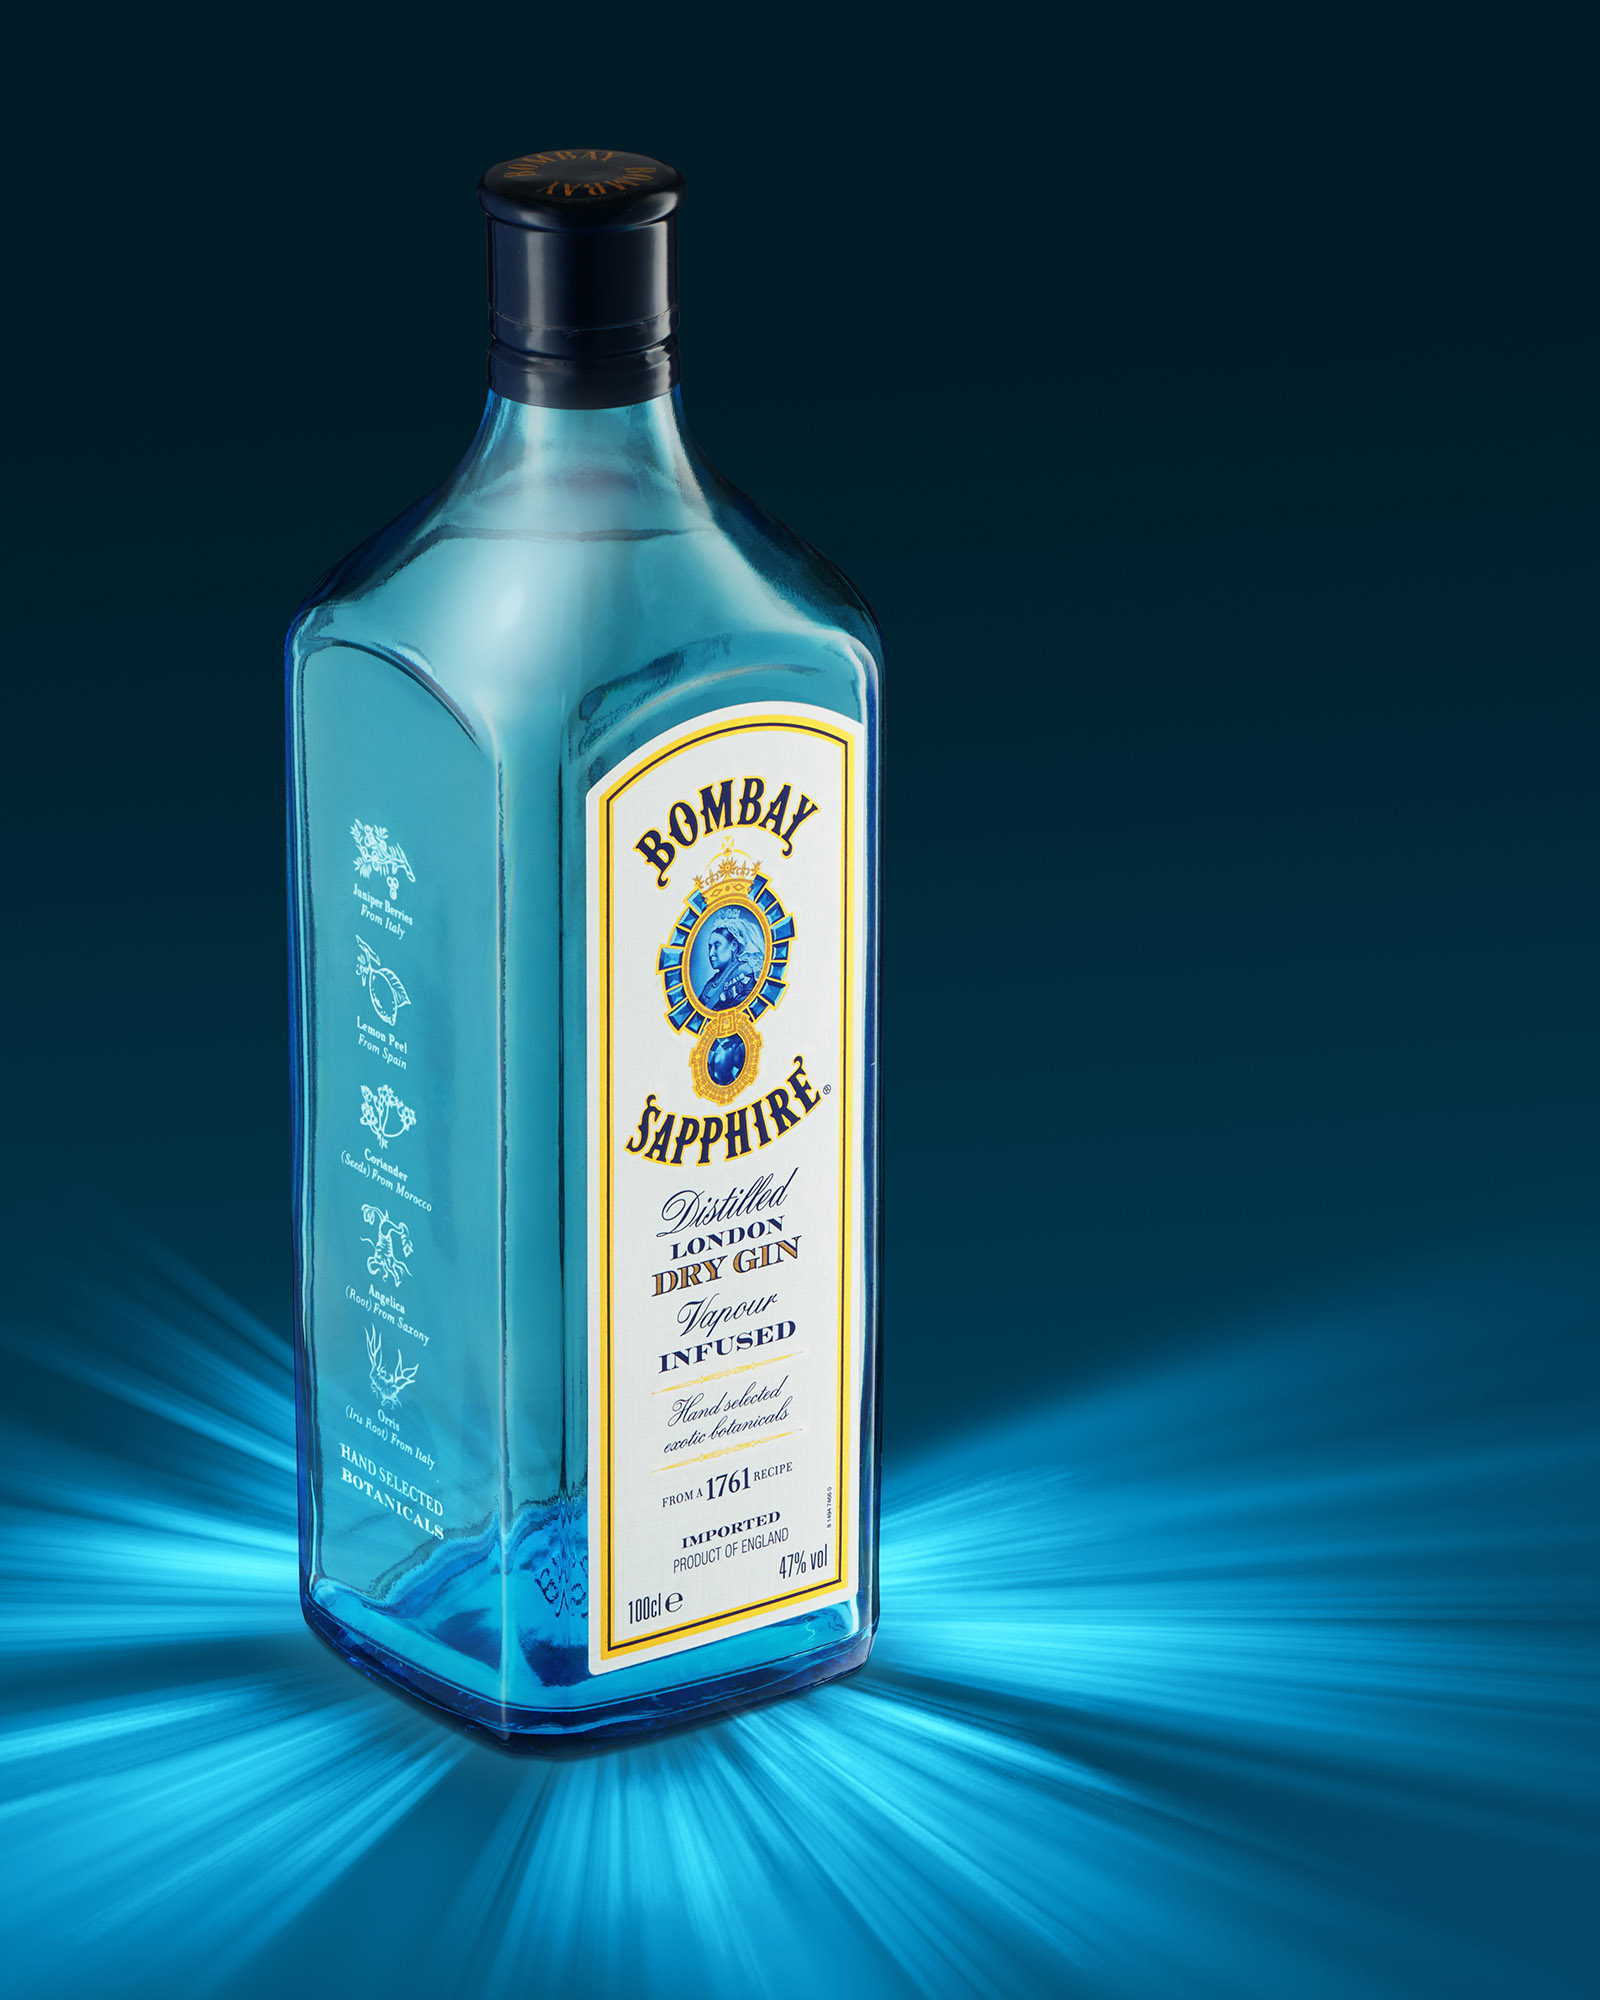 Ian Knaggs Commercial Product Photographer - Bombay Sapphire